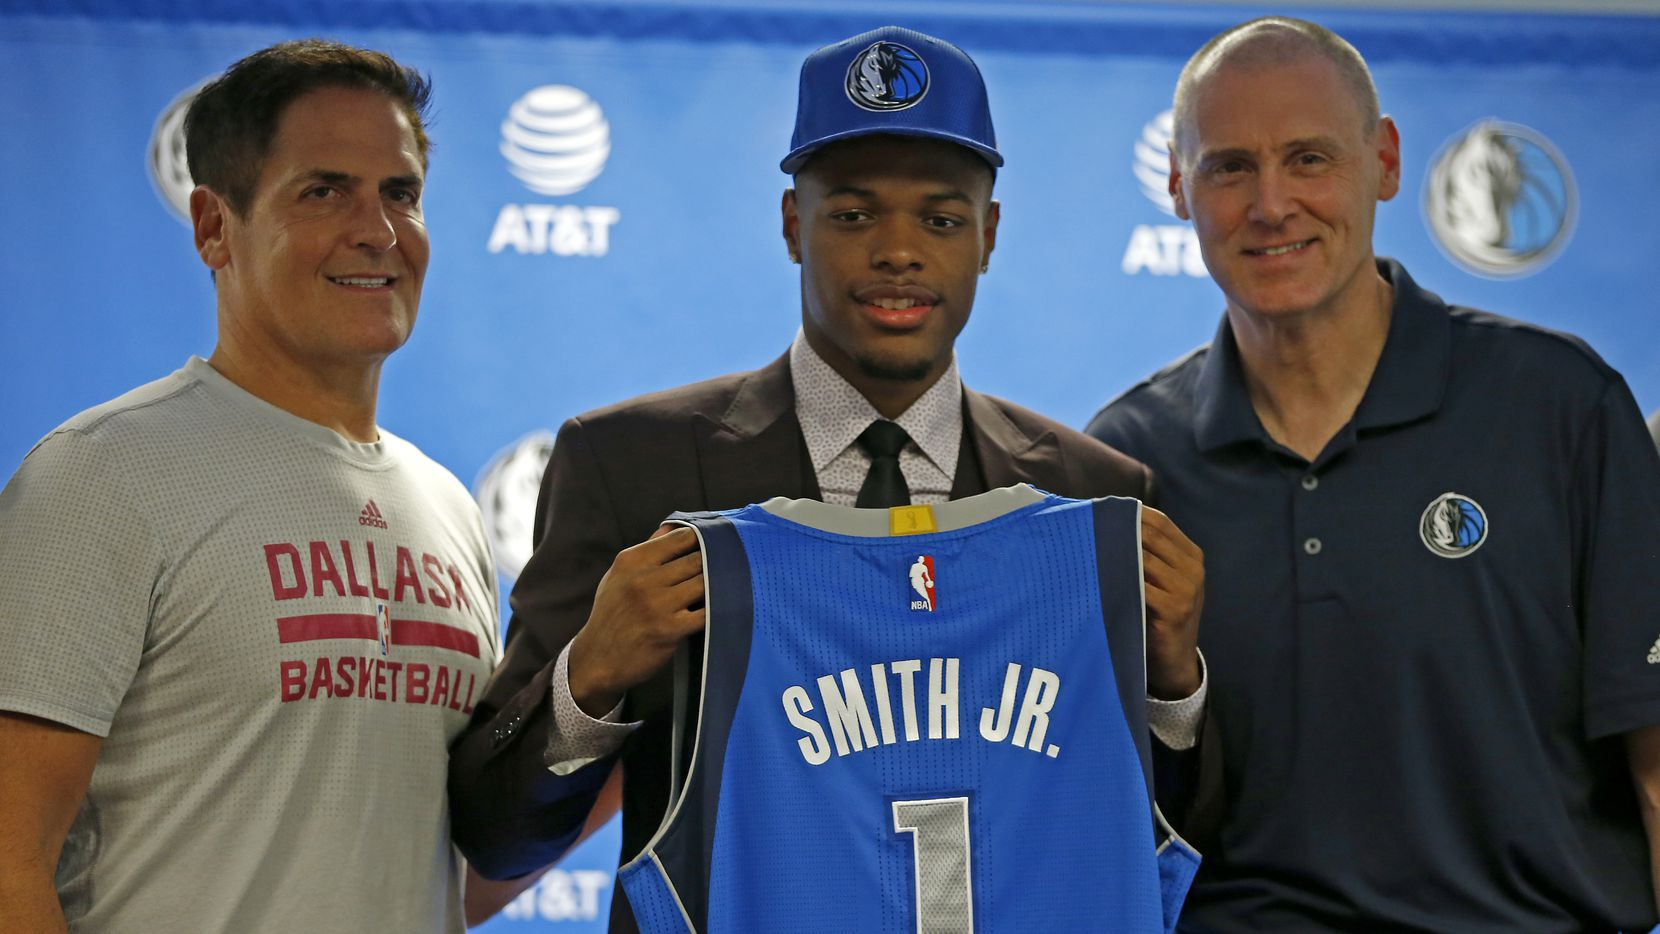 on sale 91089 c4efd Dennis Smith Jr. will wear No. 1 as a Maverick. Why? Better ...